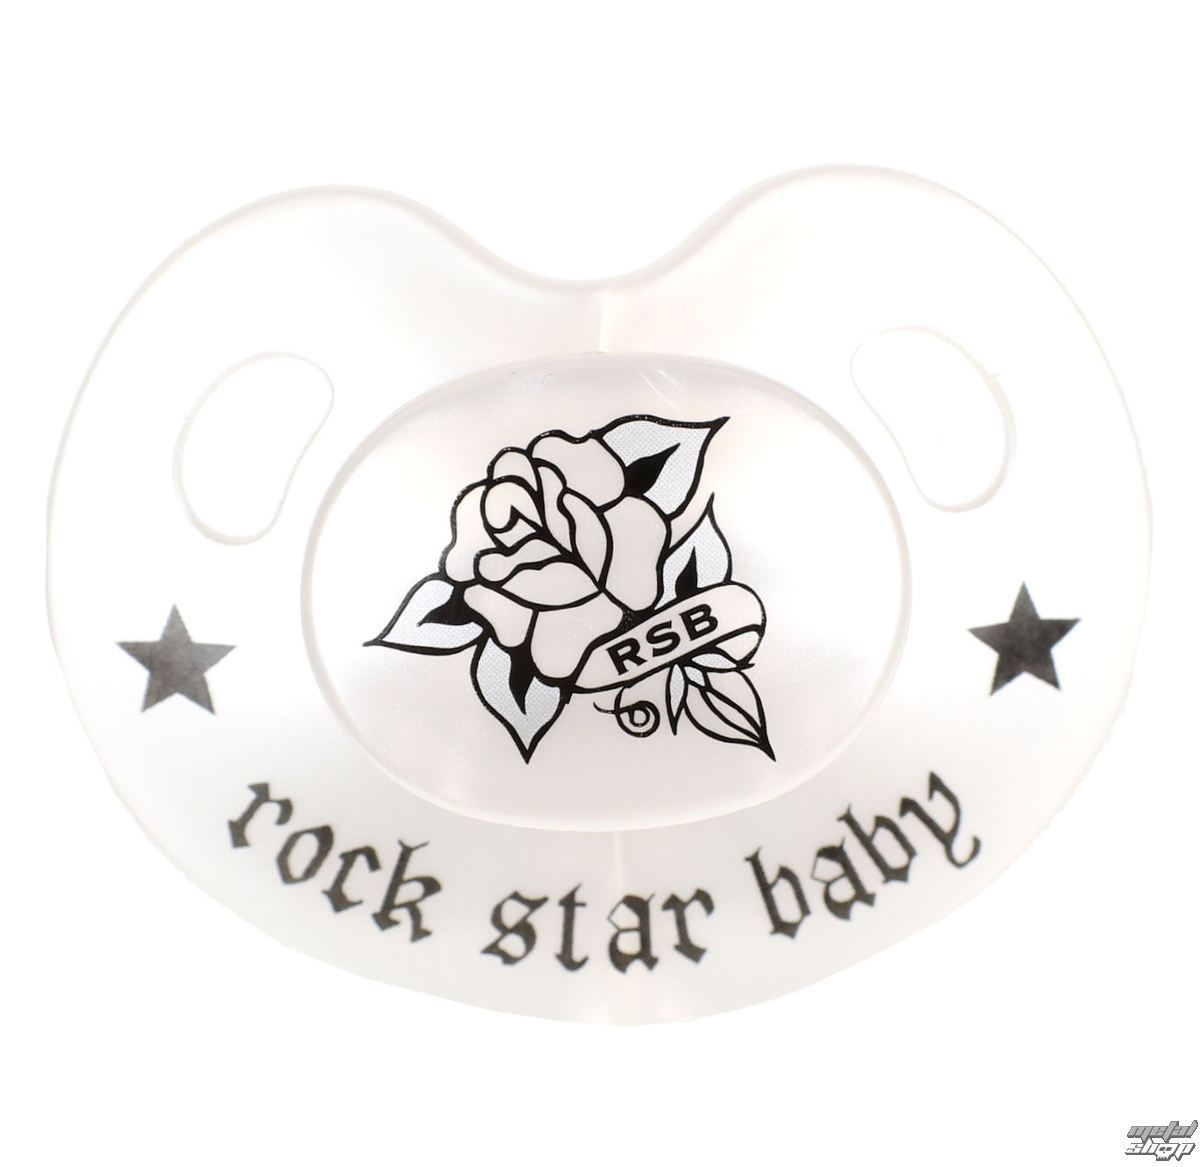 dudlík ROCK STAR BABY - Rose - 90224